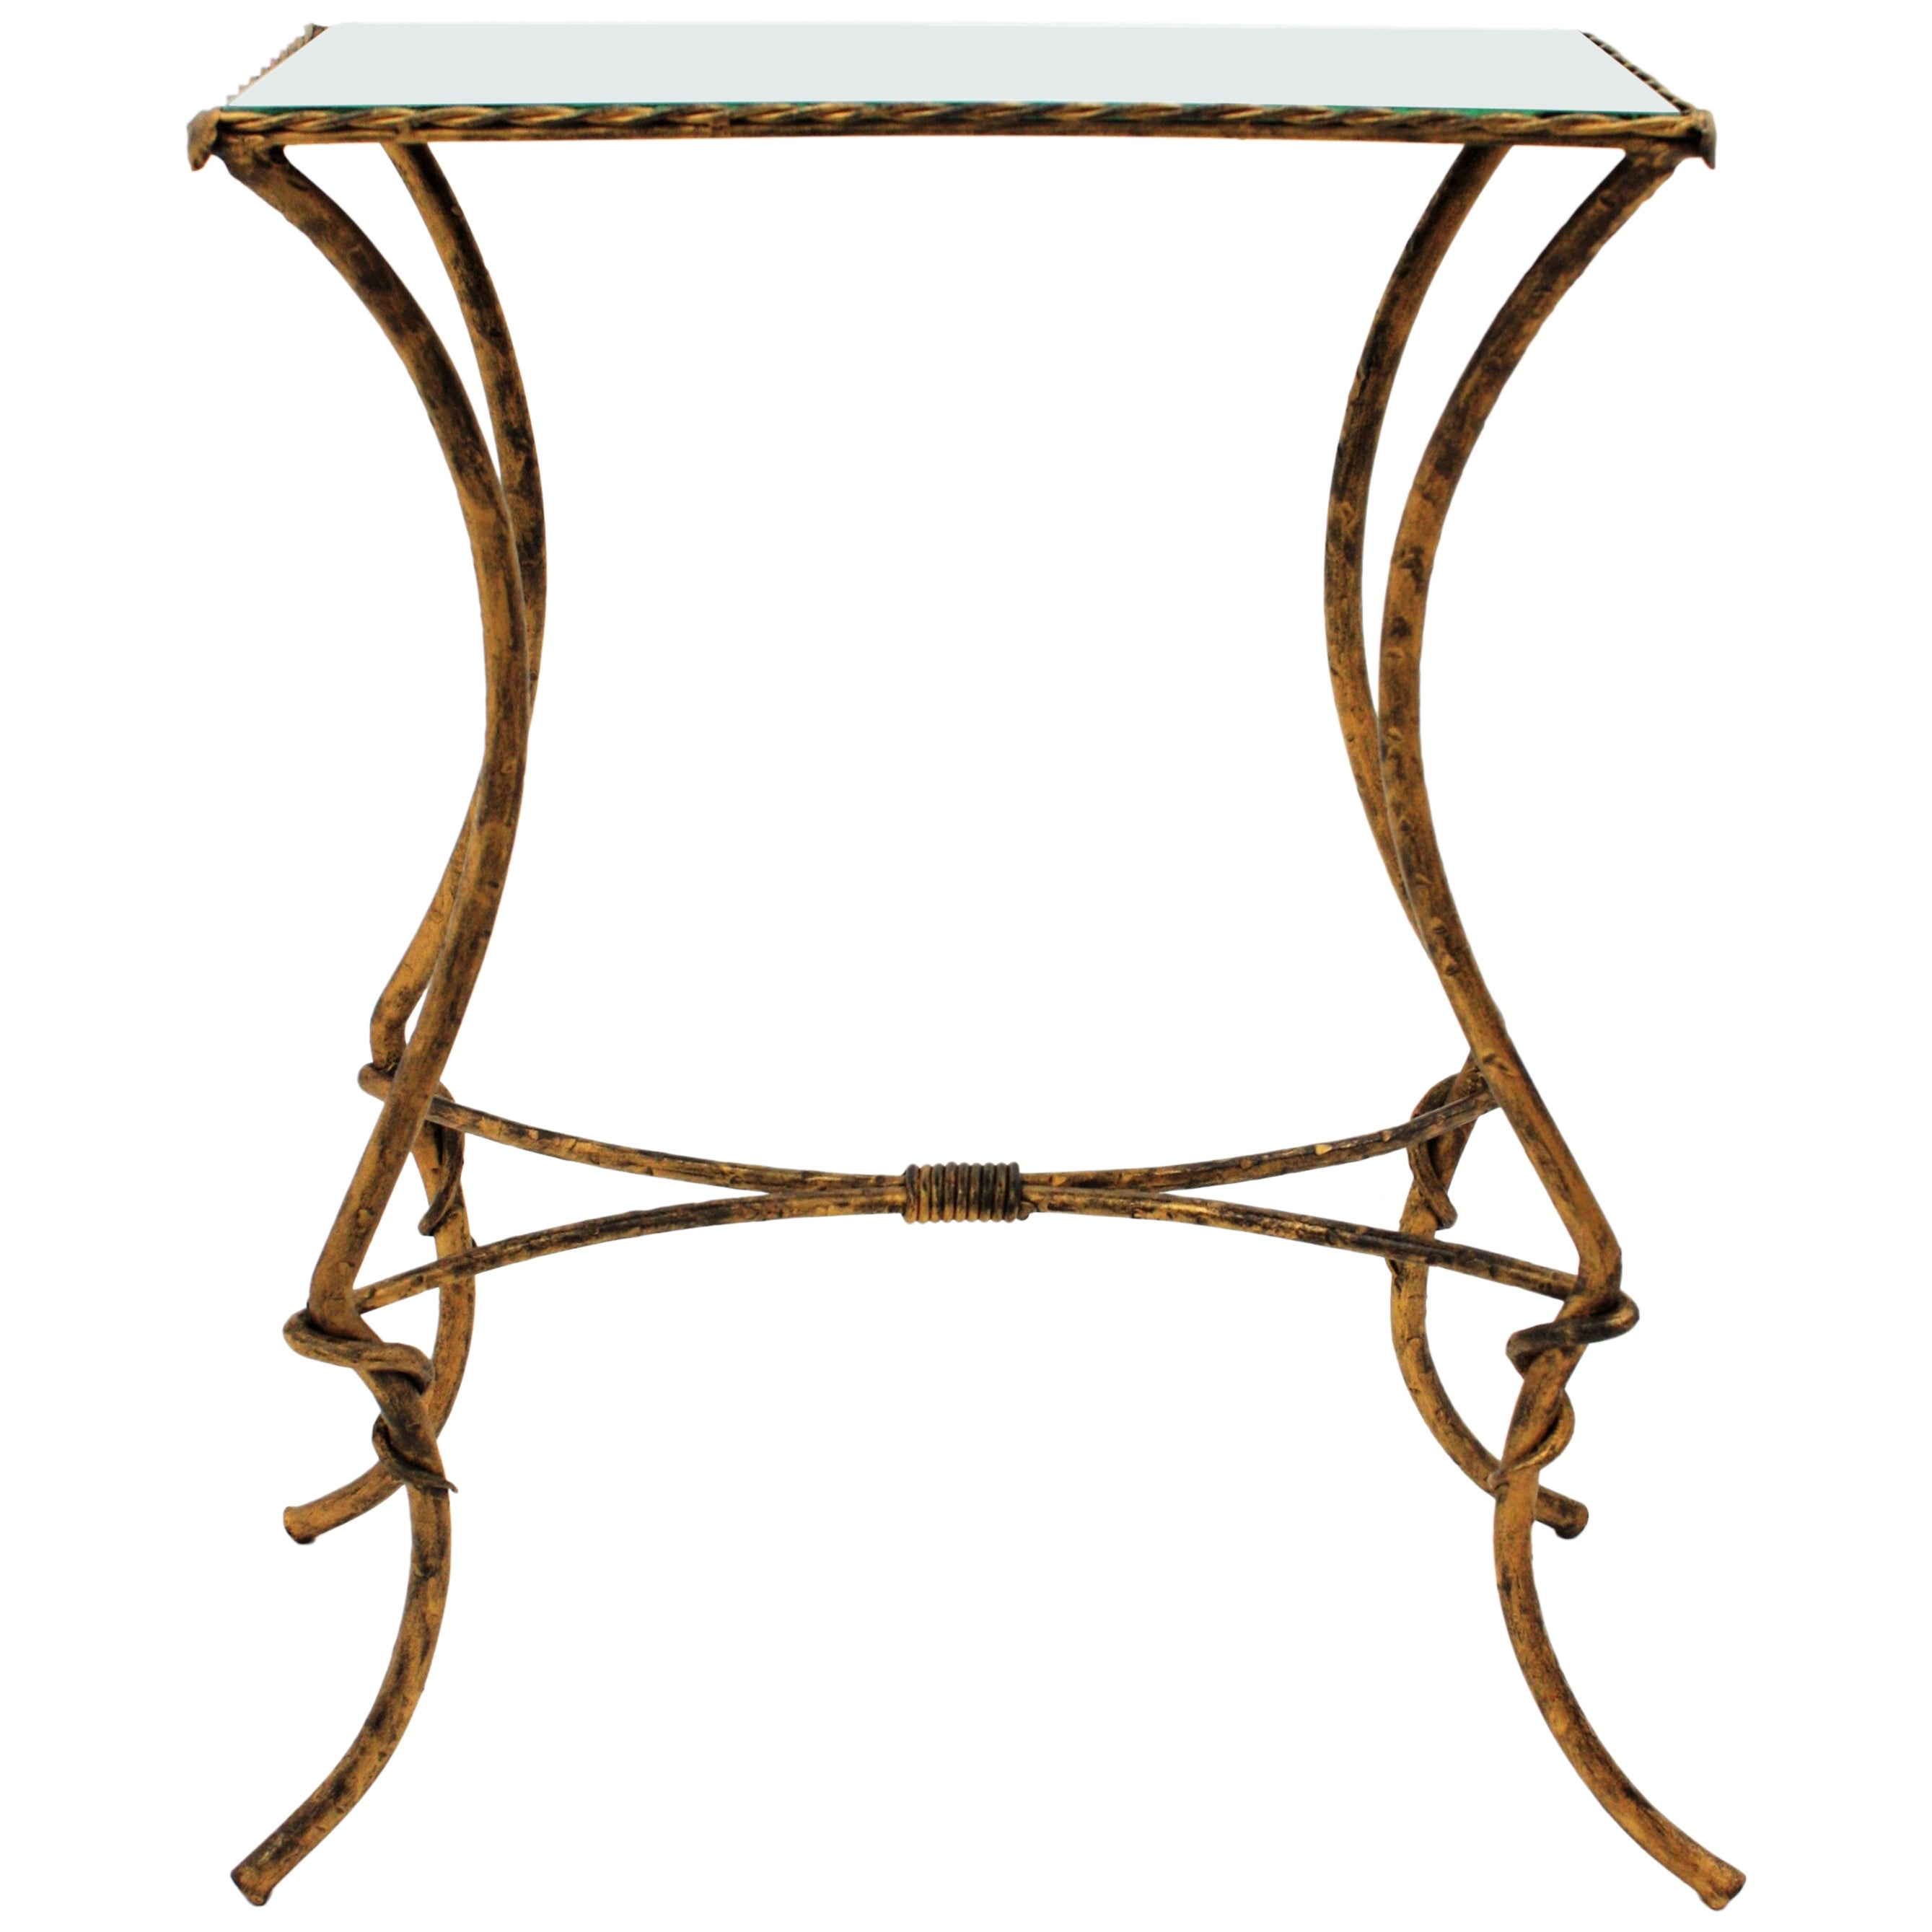 Maison Baguès Style Gilt Wrought Iron Drinks Table with Mirror Top, 1940s